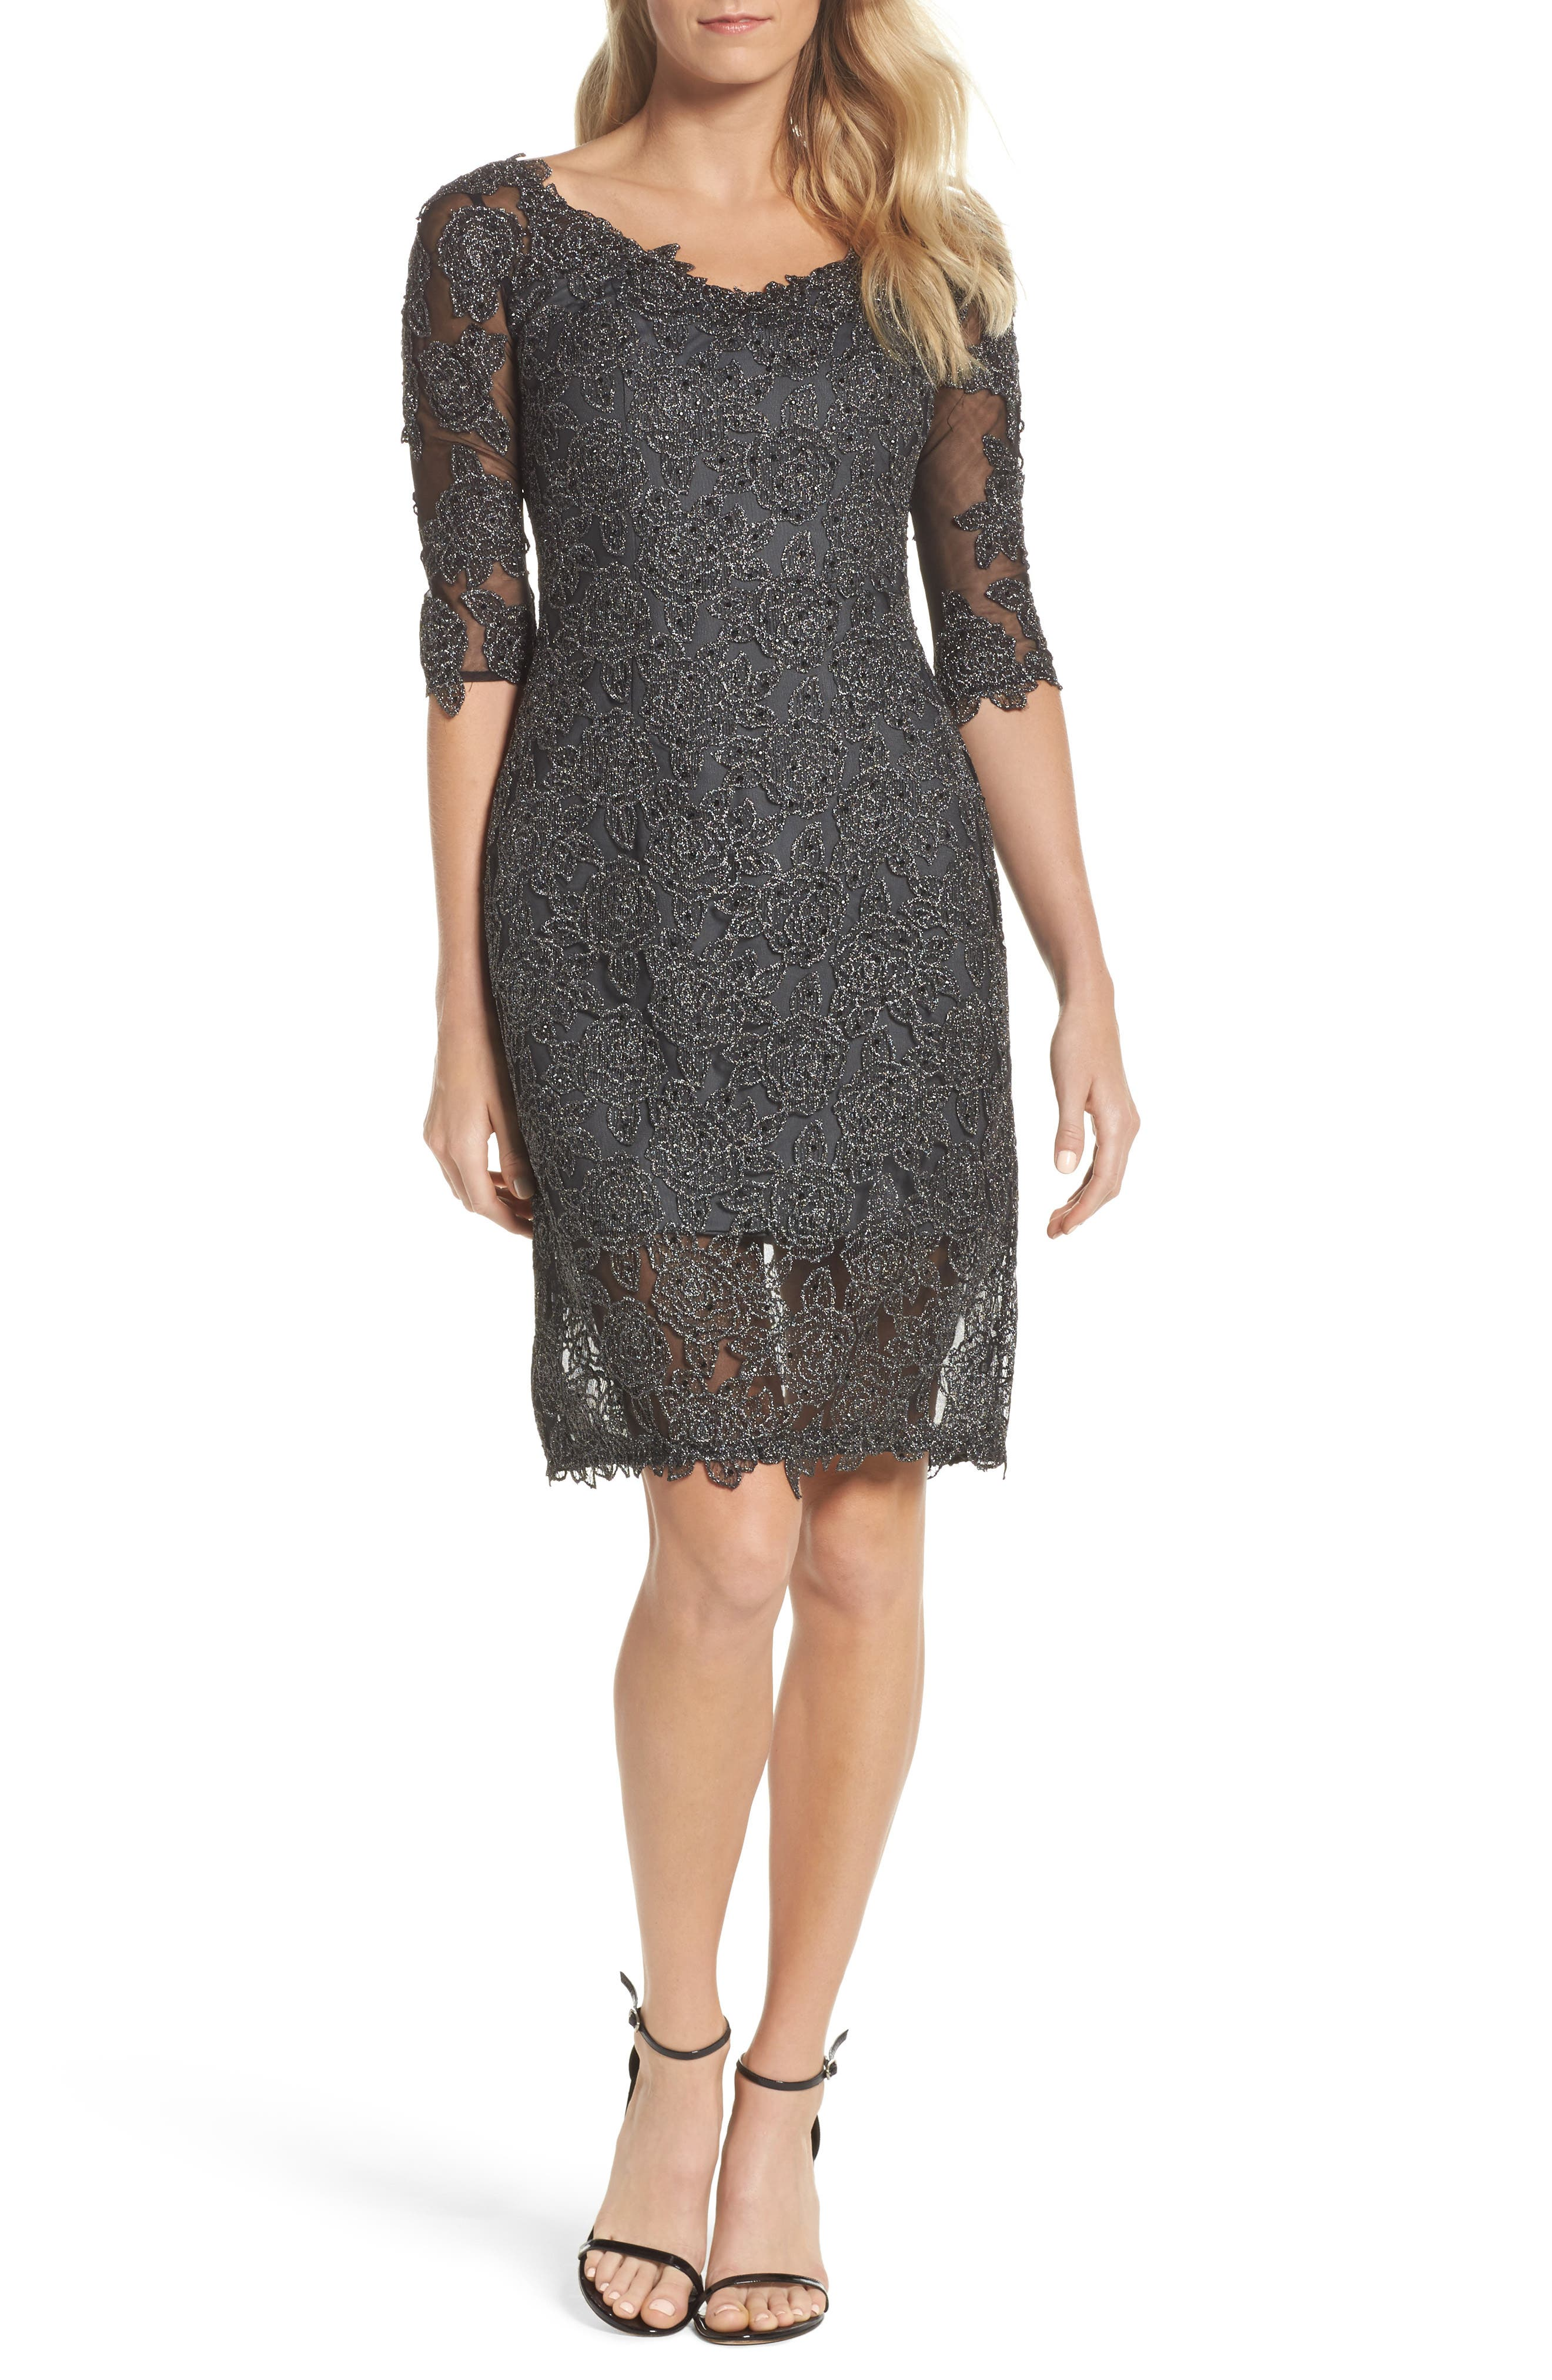 La Femme Lace Sheath Dress, Metallic